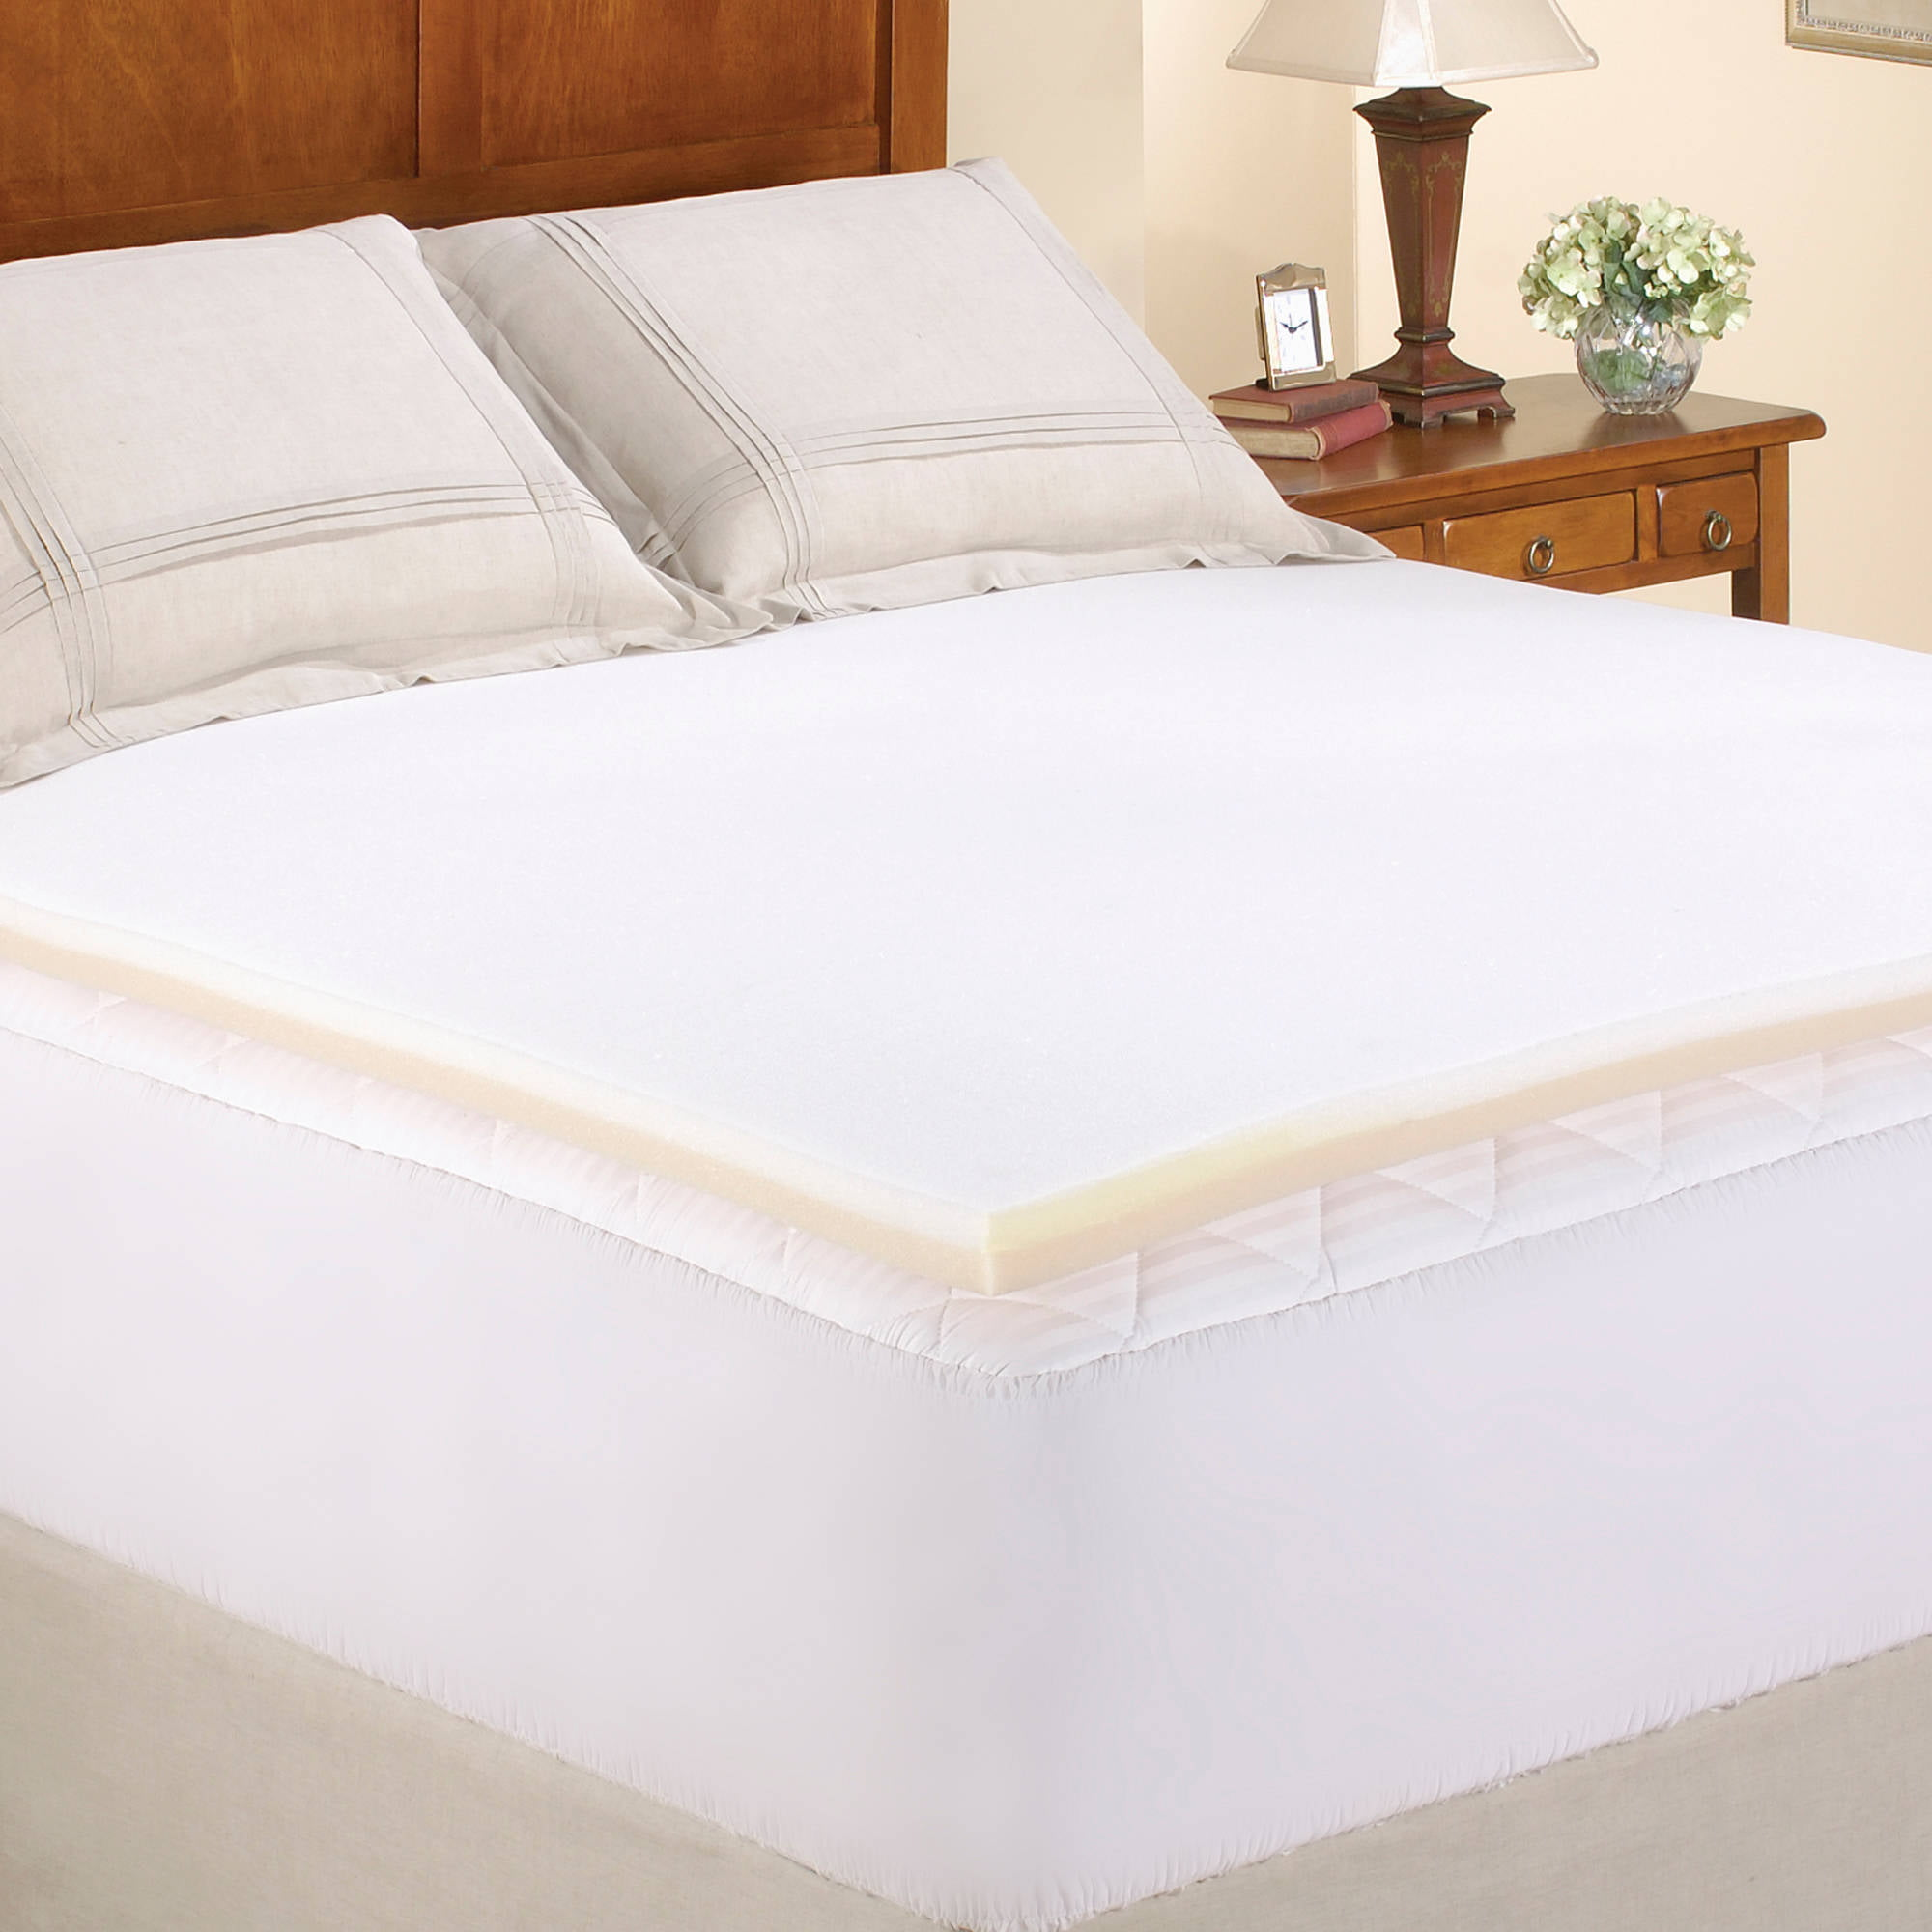 xl mattress size foam designed o crate walmart to queen memory twin topper egg add extra